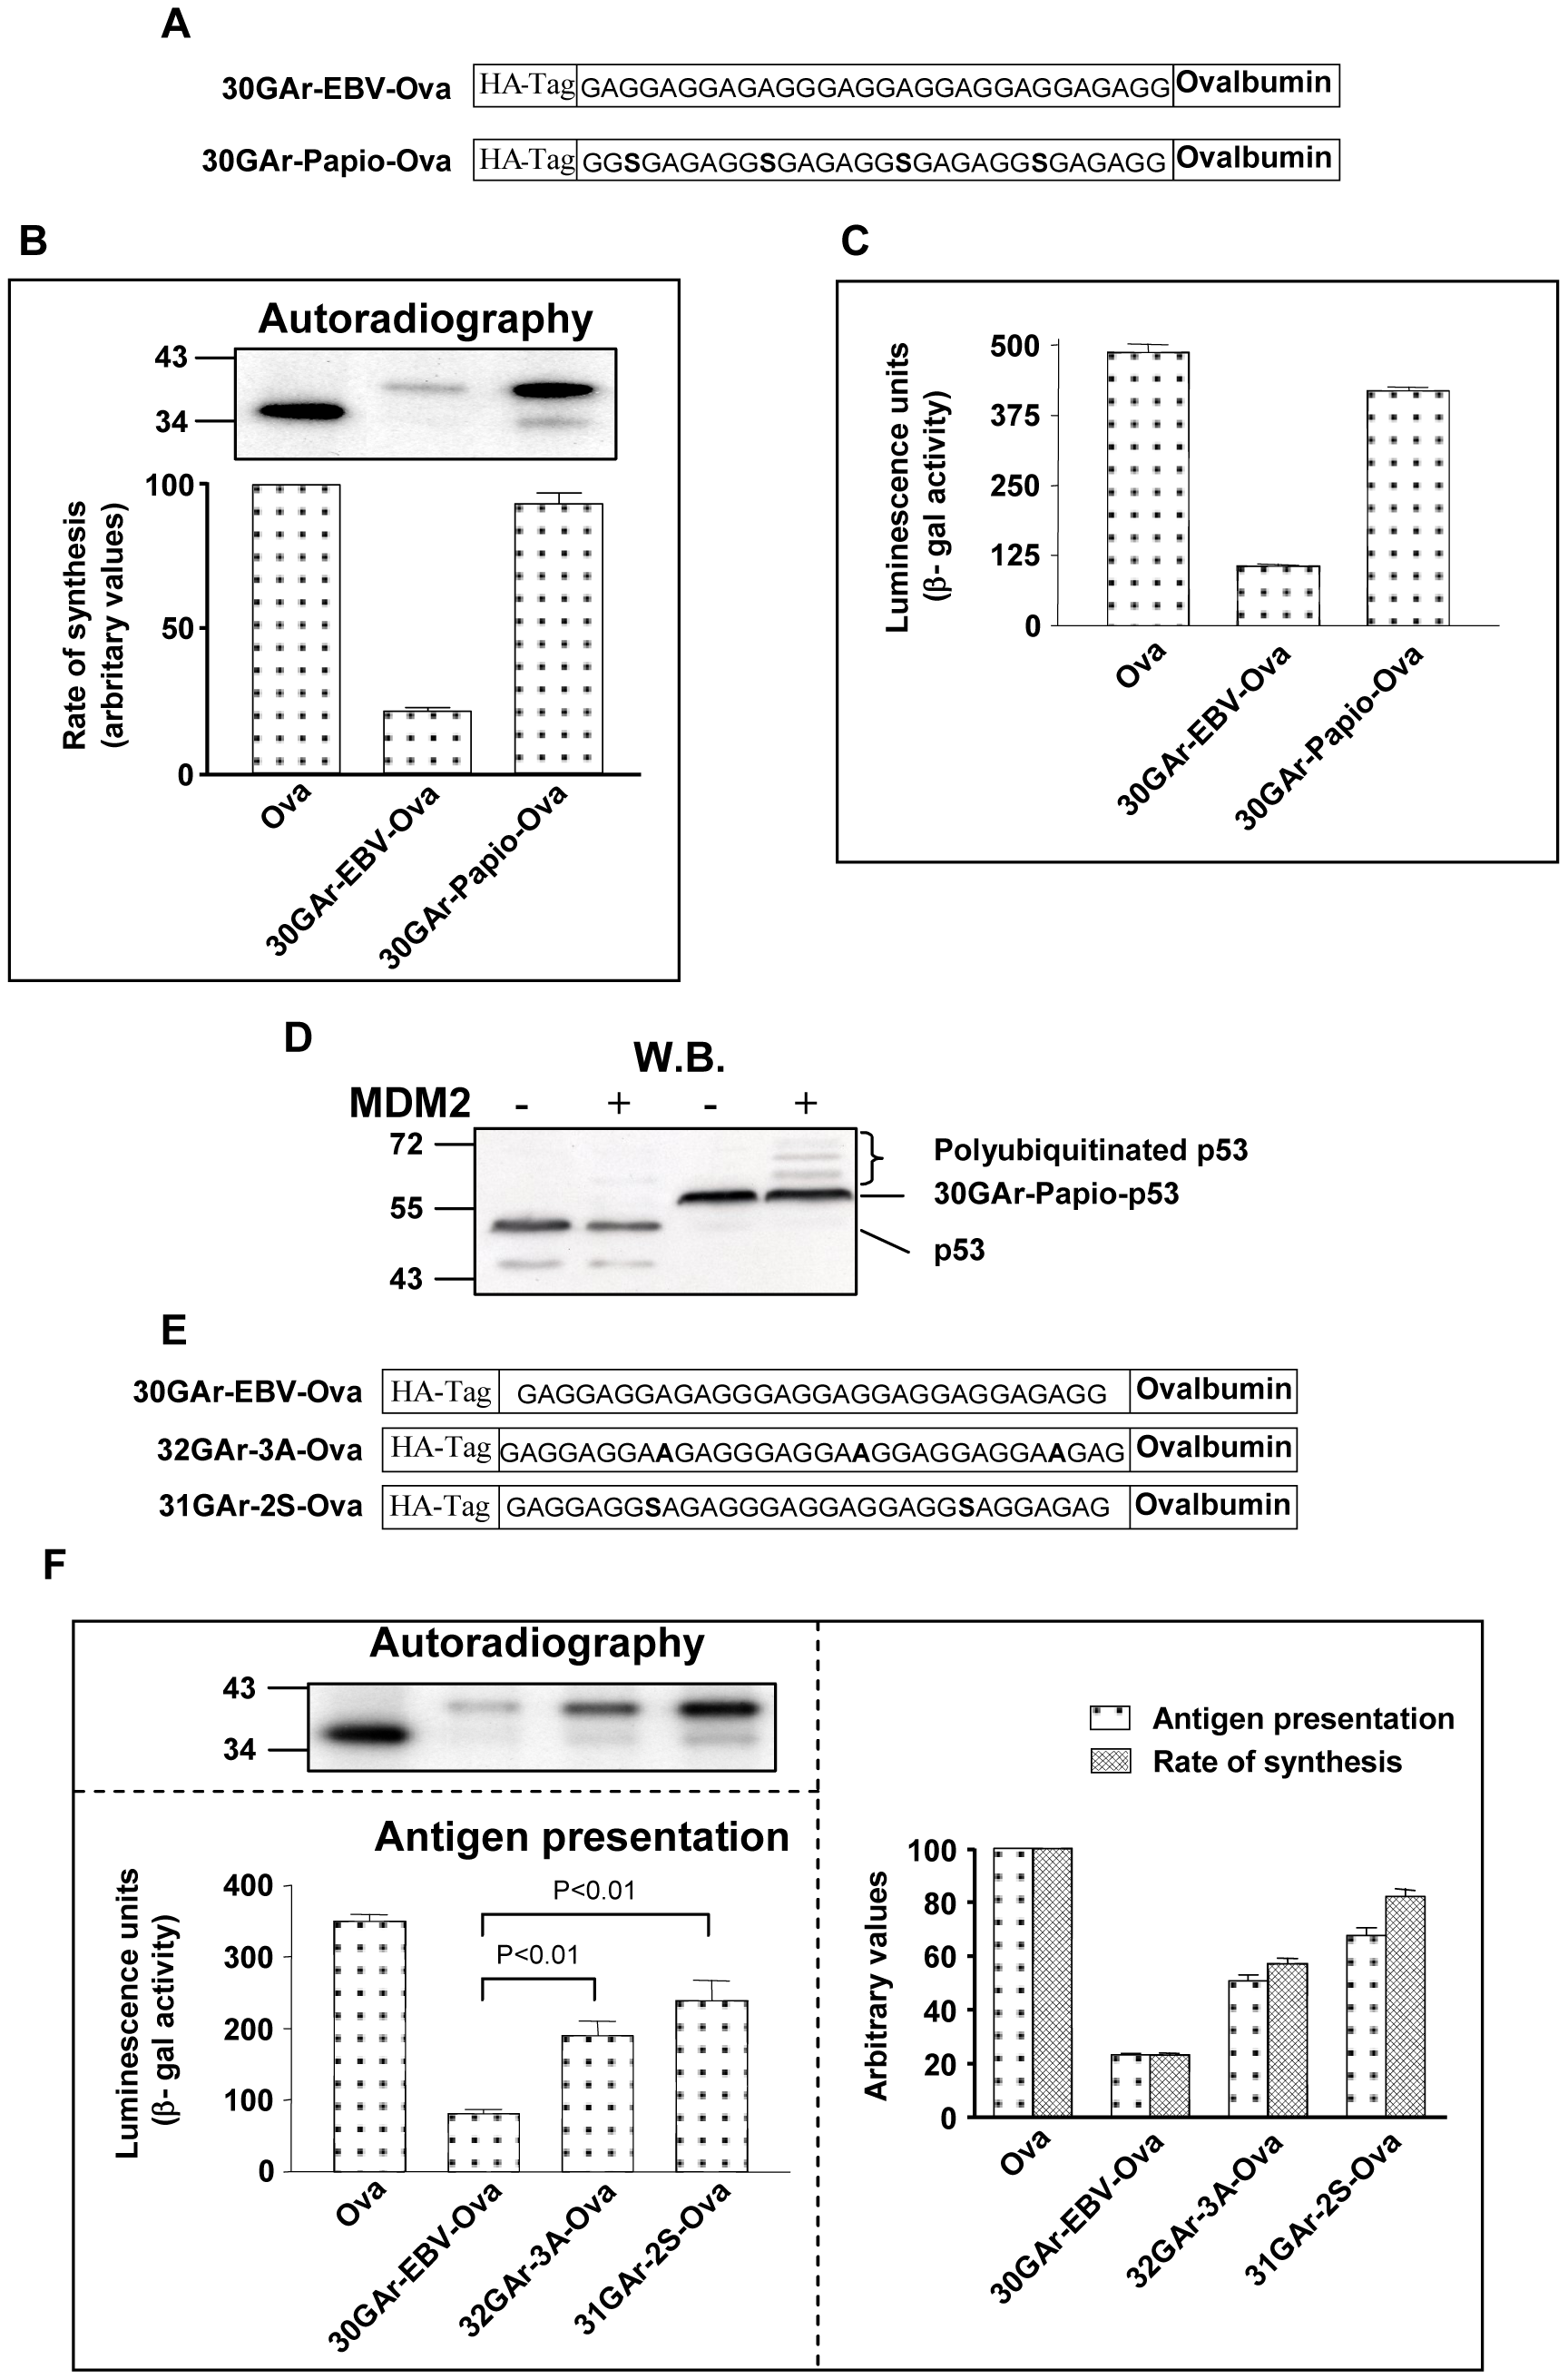 The rate of mRNA translation initiation directly correlates with the amount of antigen presented from a given mRNA.